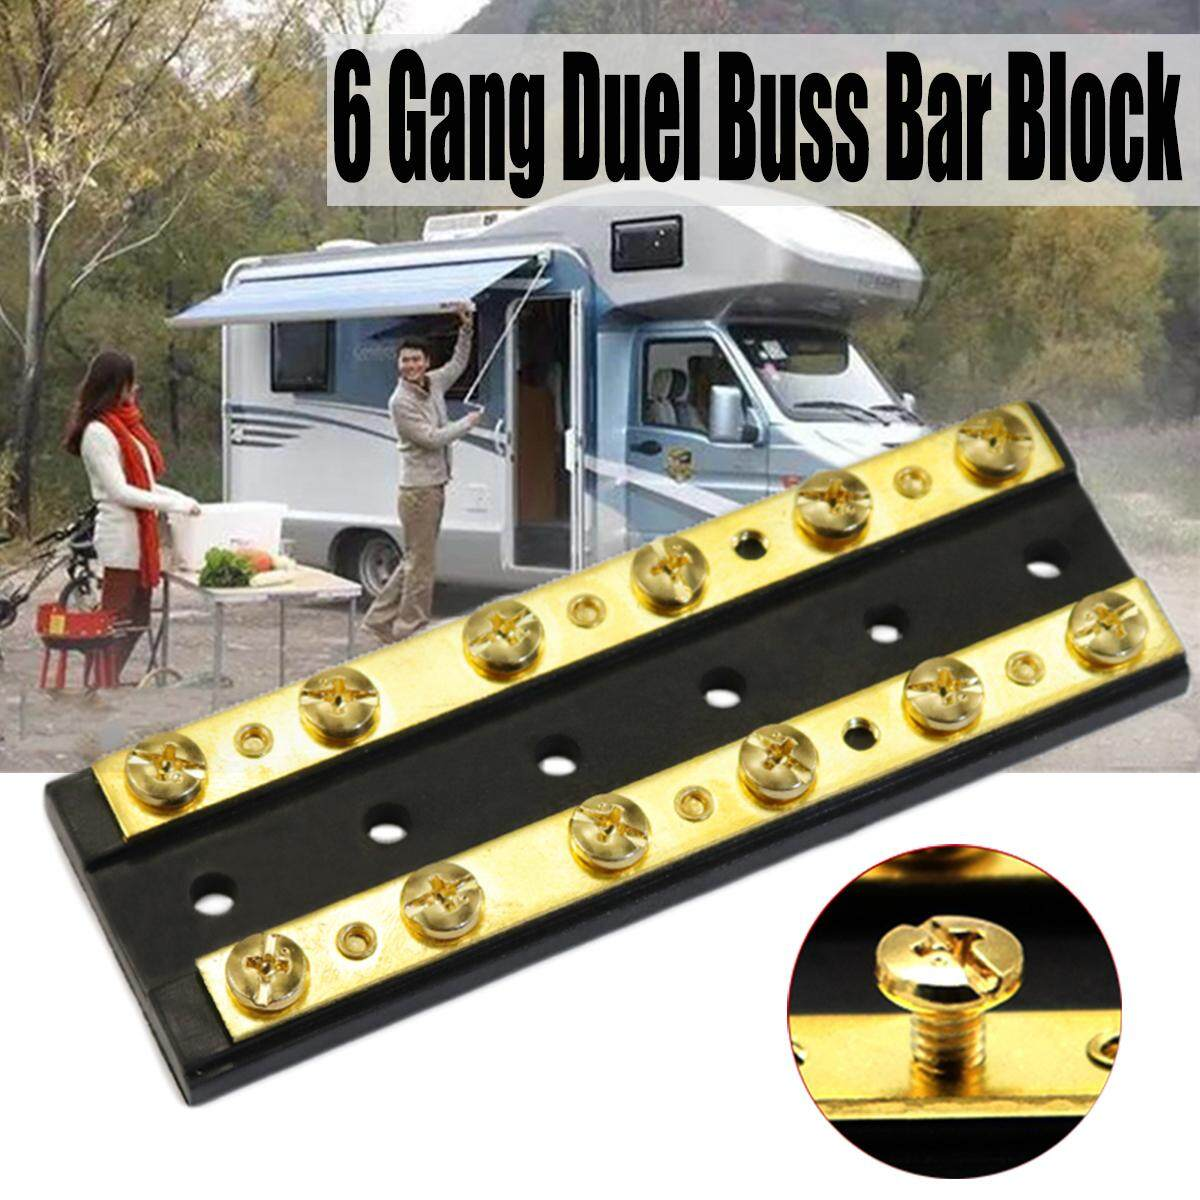 【free Shipping + Flash Deal】marine Boat Rv Brass 4 6 8 Gang Duel Buss Bar Block Positive & Negative (f3883-6p) By Freebang.